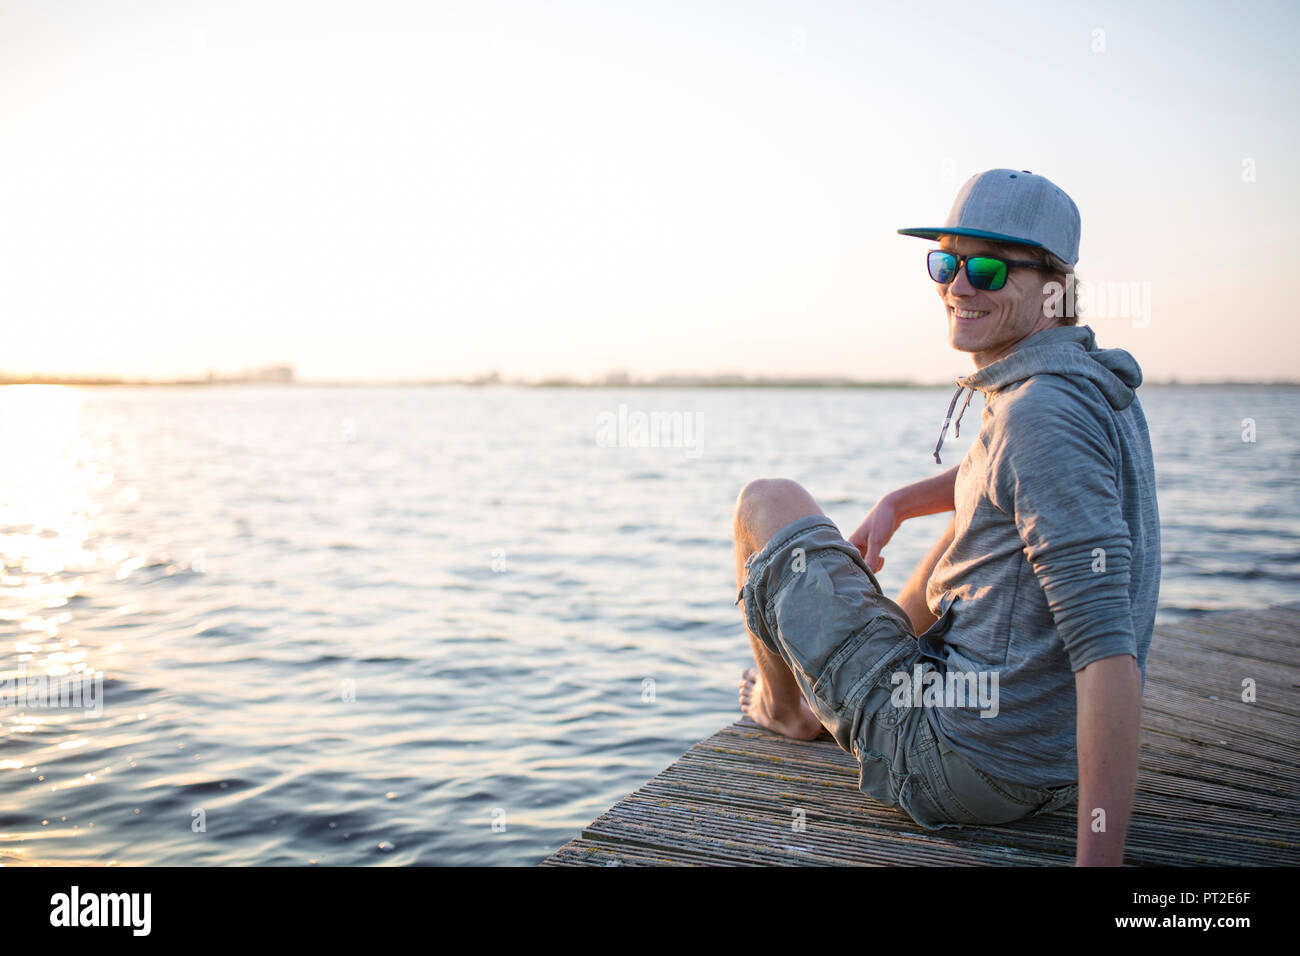 Smiling man sitting on wooden boardwalk at sunset - Stock Image